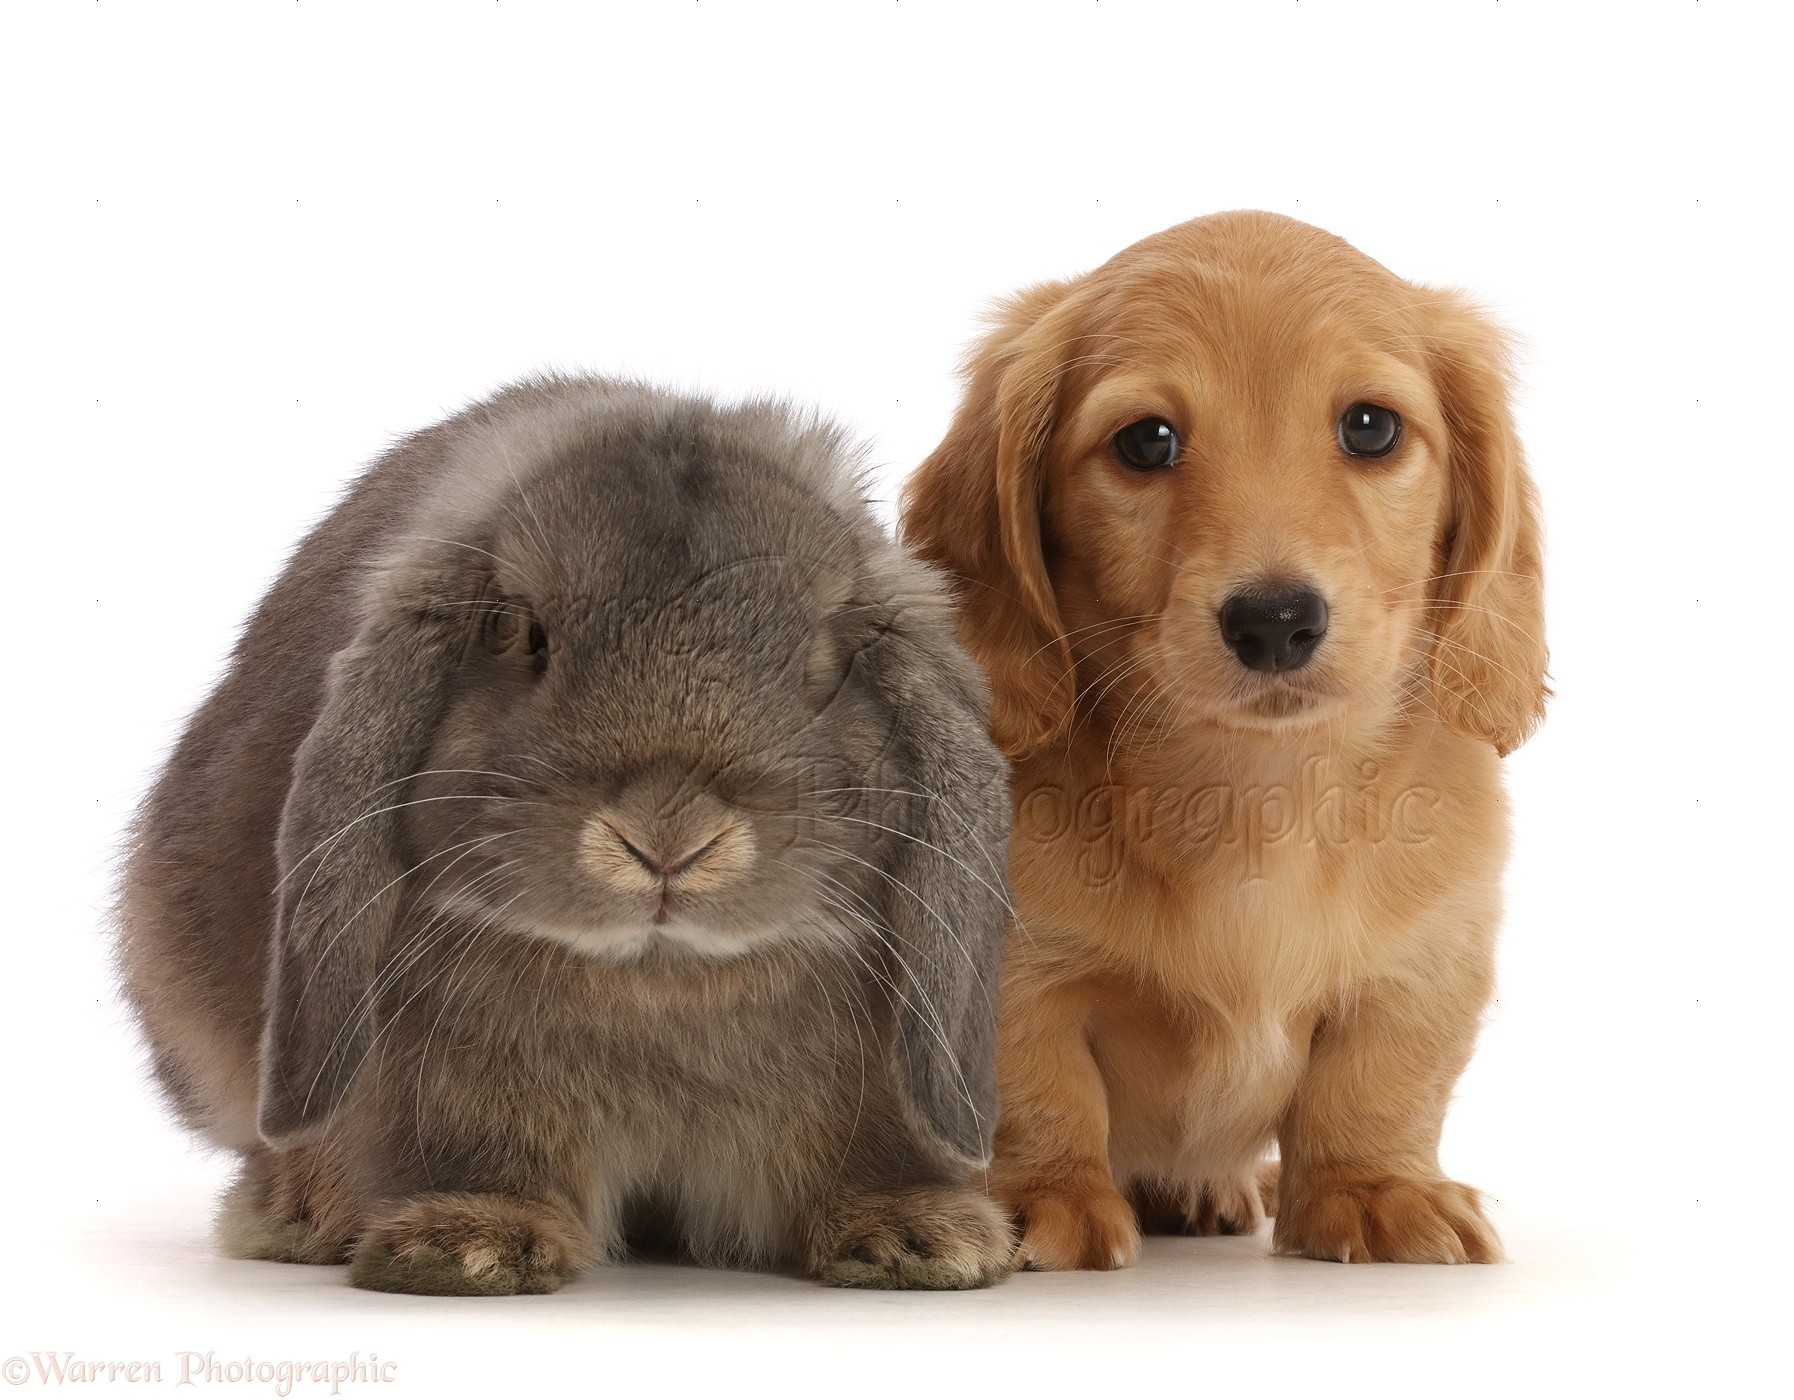 Pets Cream Dachshund Puppy 7 Weeks Old And Grey Lop Bunny Photo Wp48003